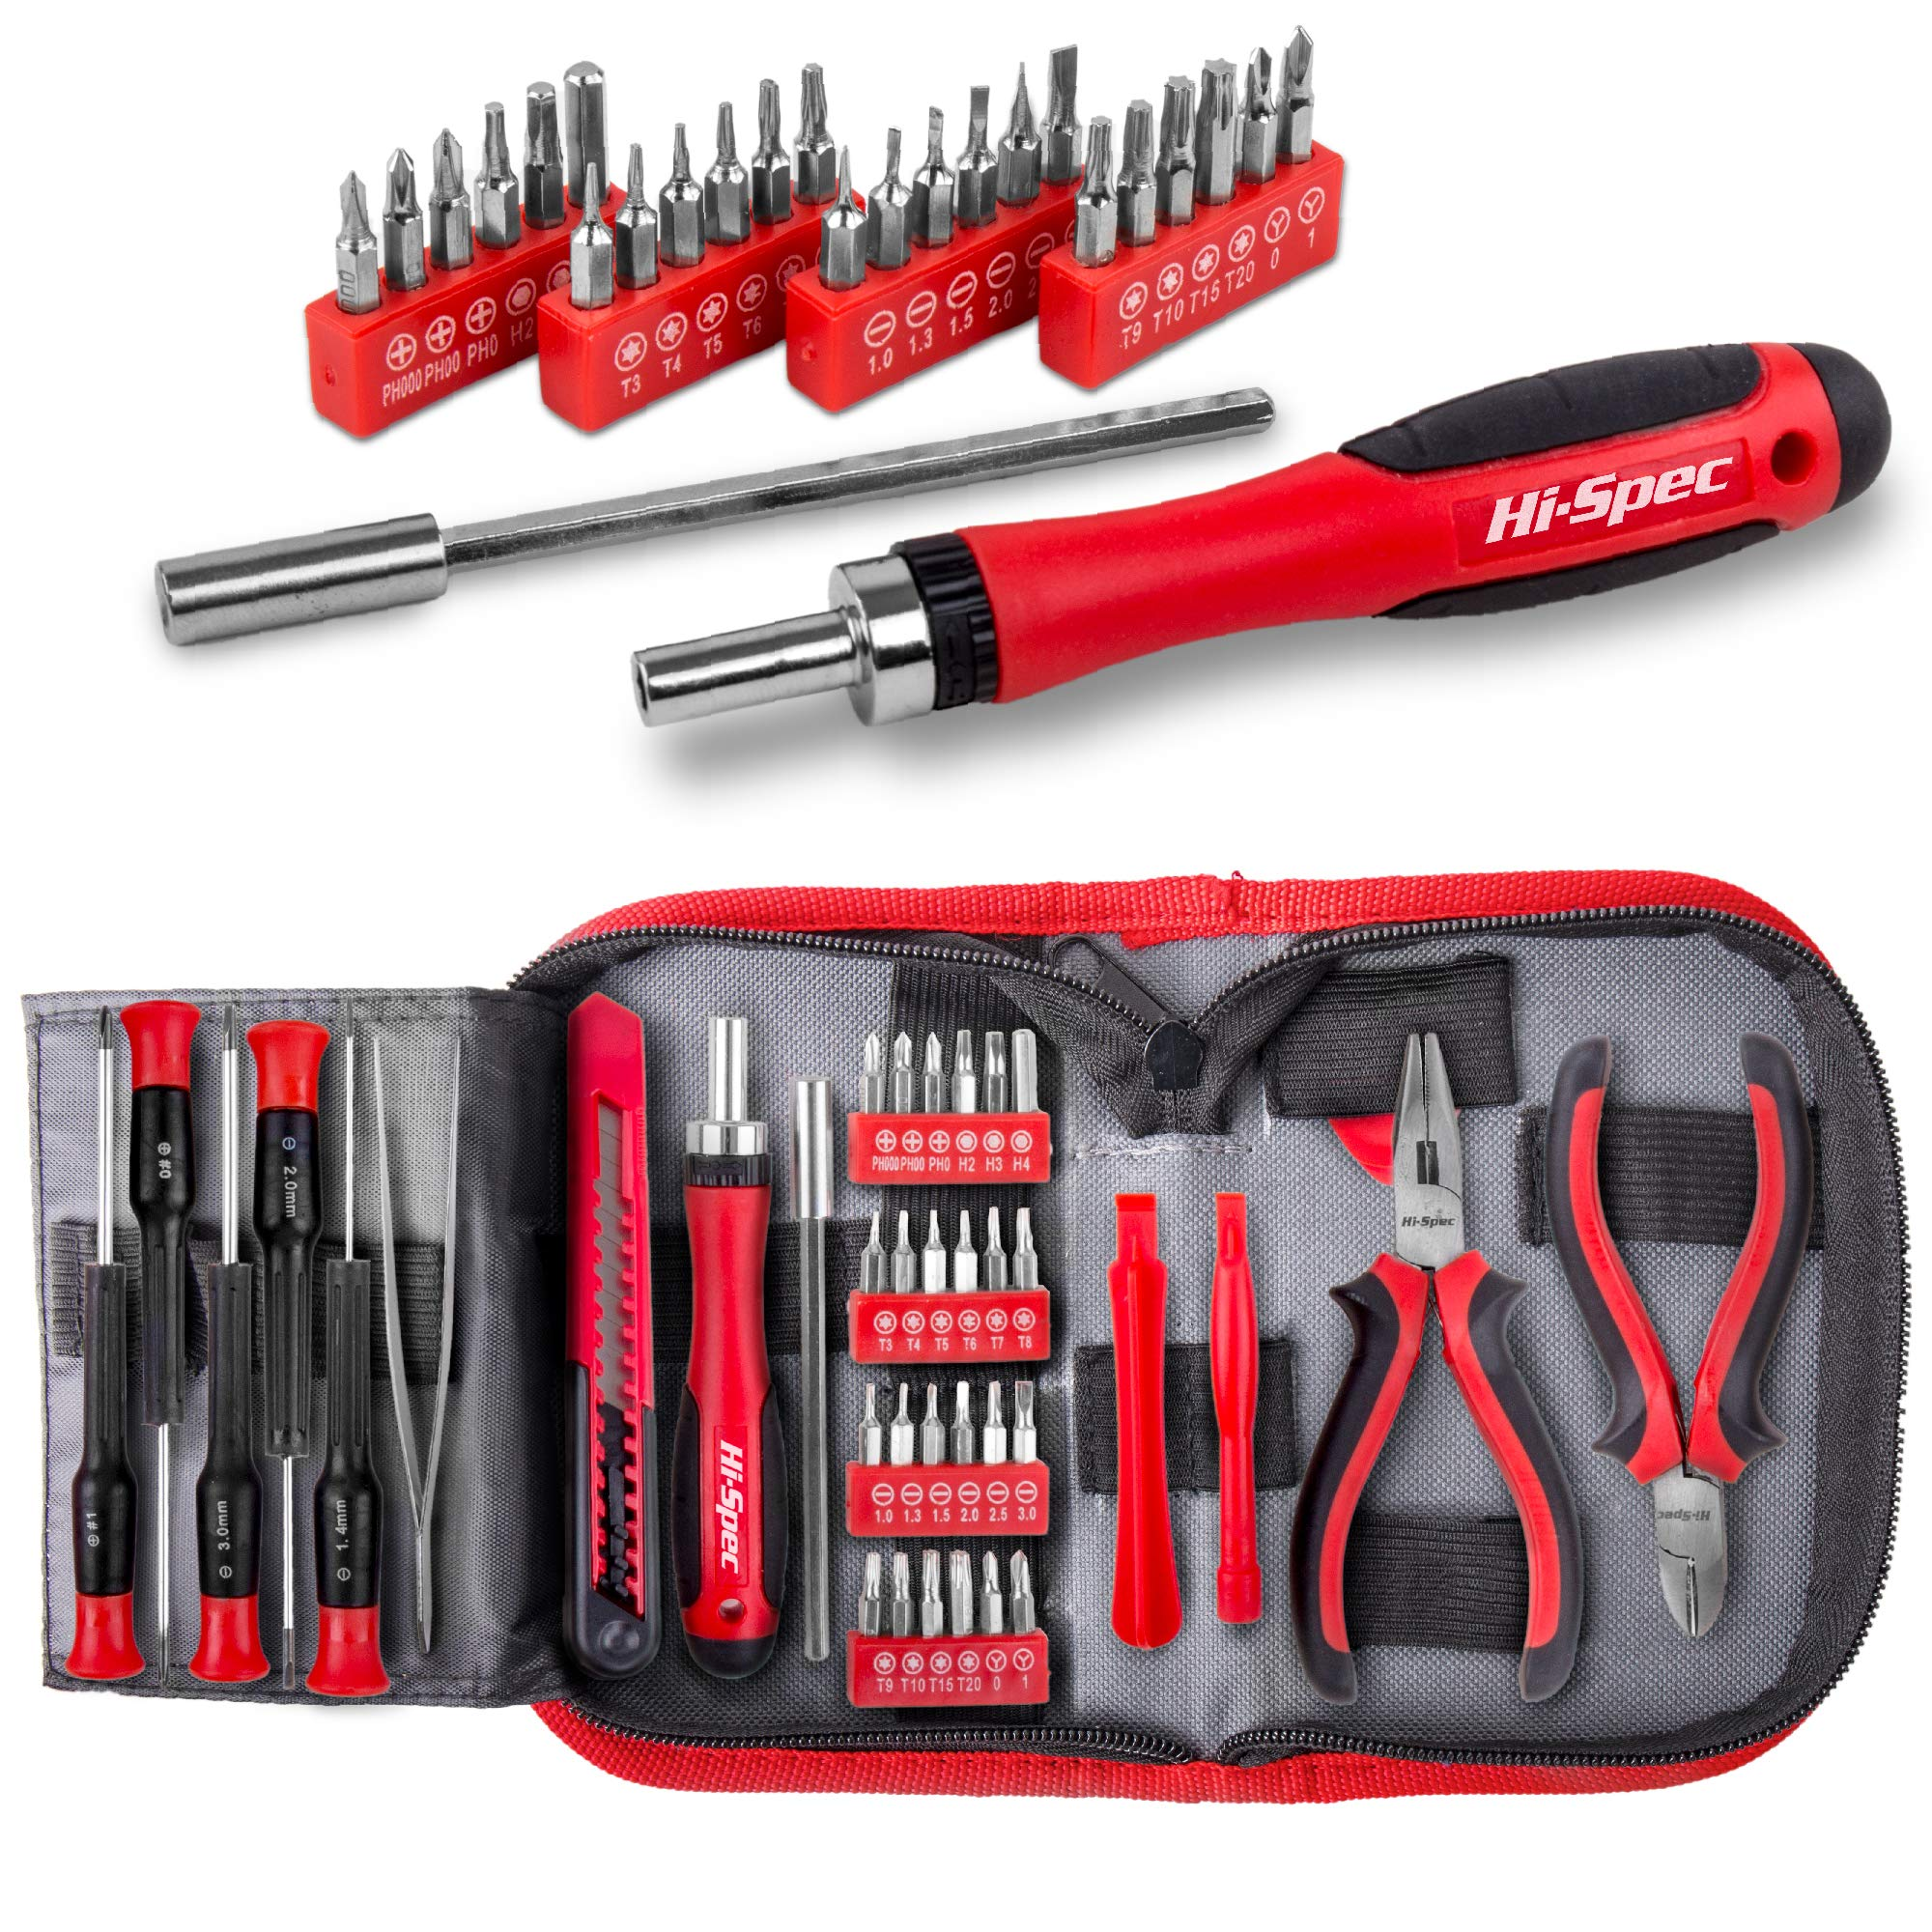 Hi-Spec 38 pcs Electronics Repair Tool Kit - Magnetic Precision Ratcheting Screwdriver & Phillips, Slotted, Torx, Hex and Triwing/Head Bits Set, Lose Nose & Diagonal Pliers, Tweezers Pry Bar in Case by Hi-Spec